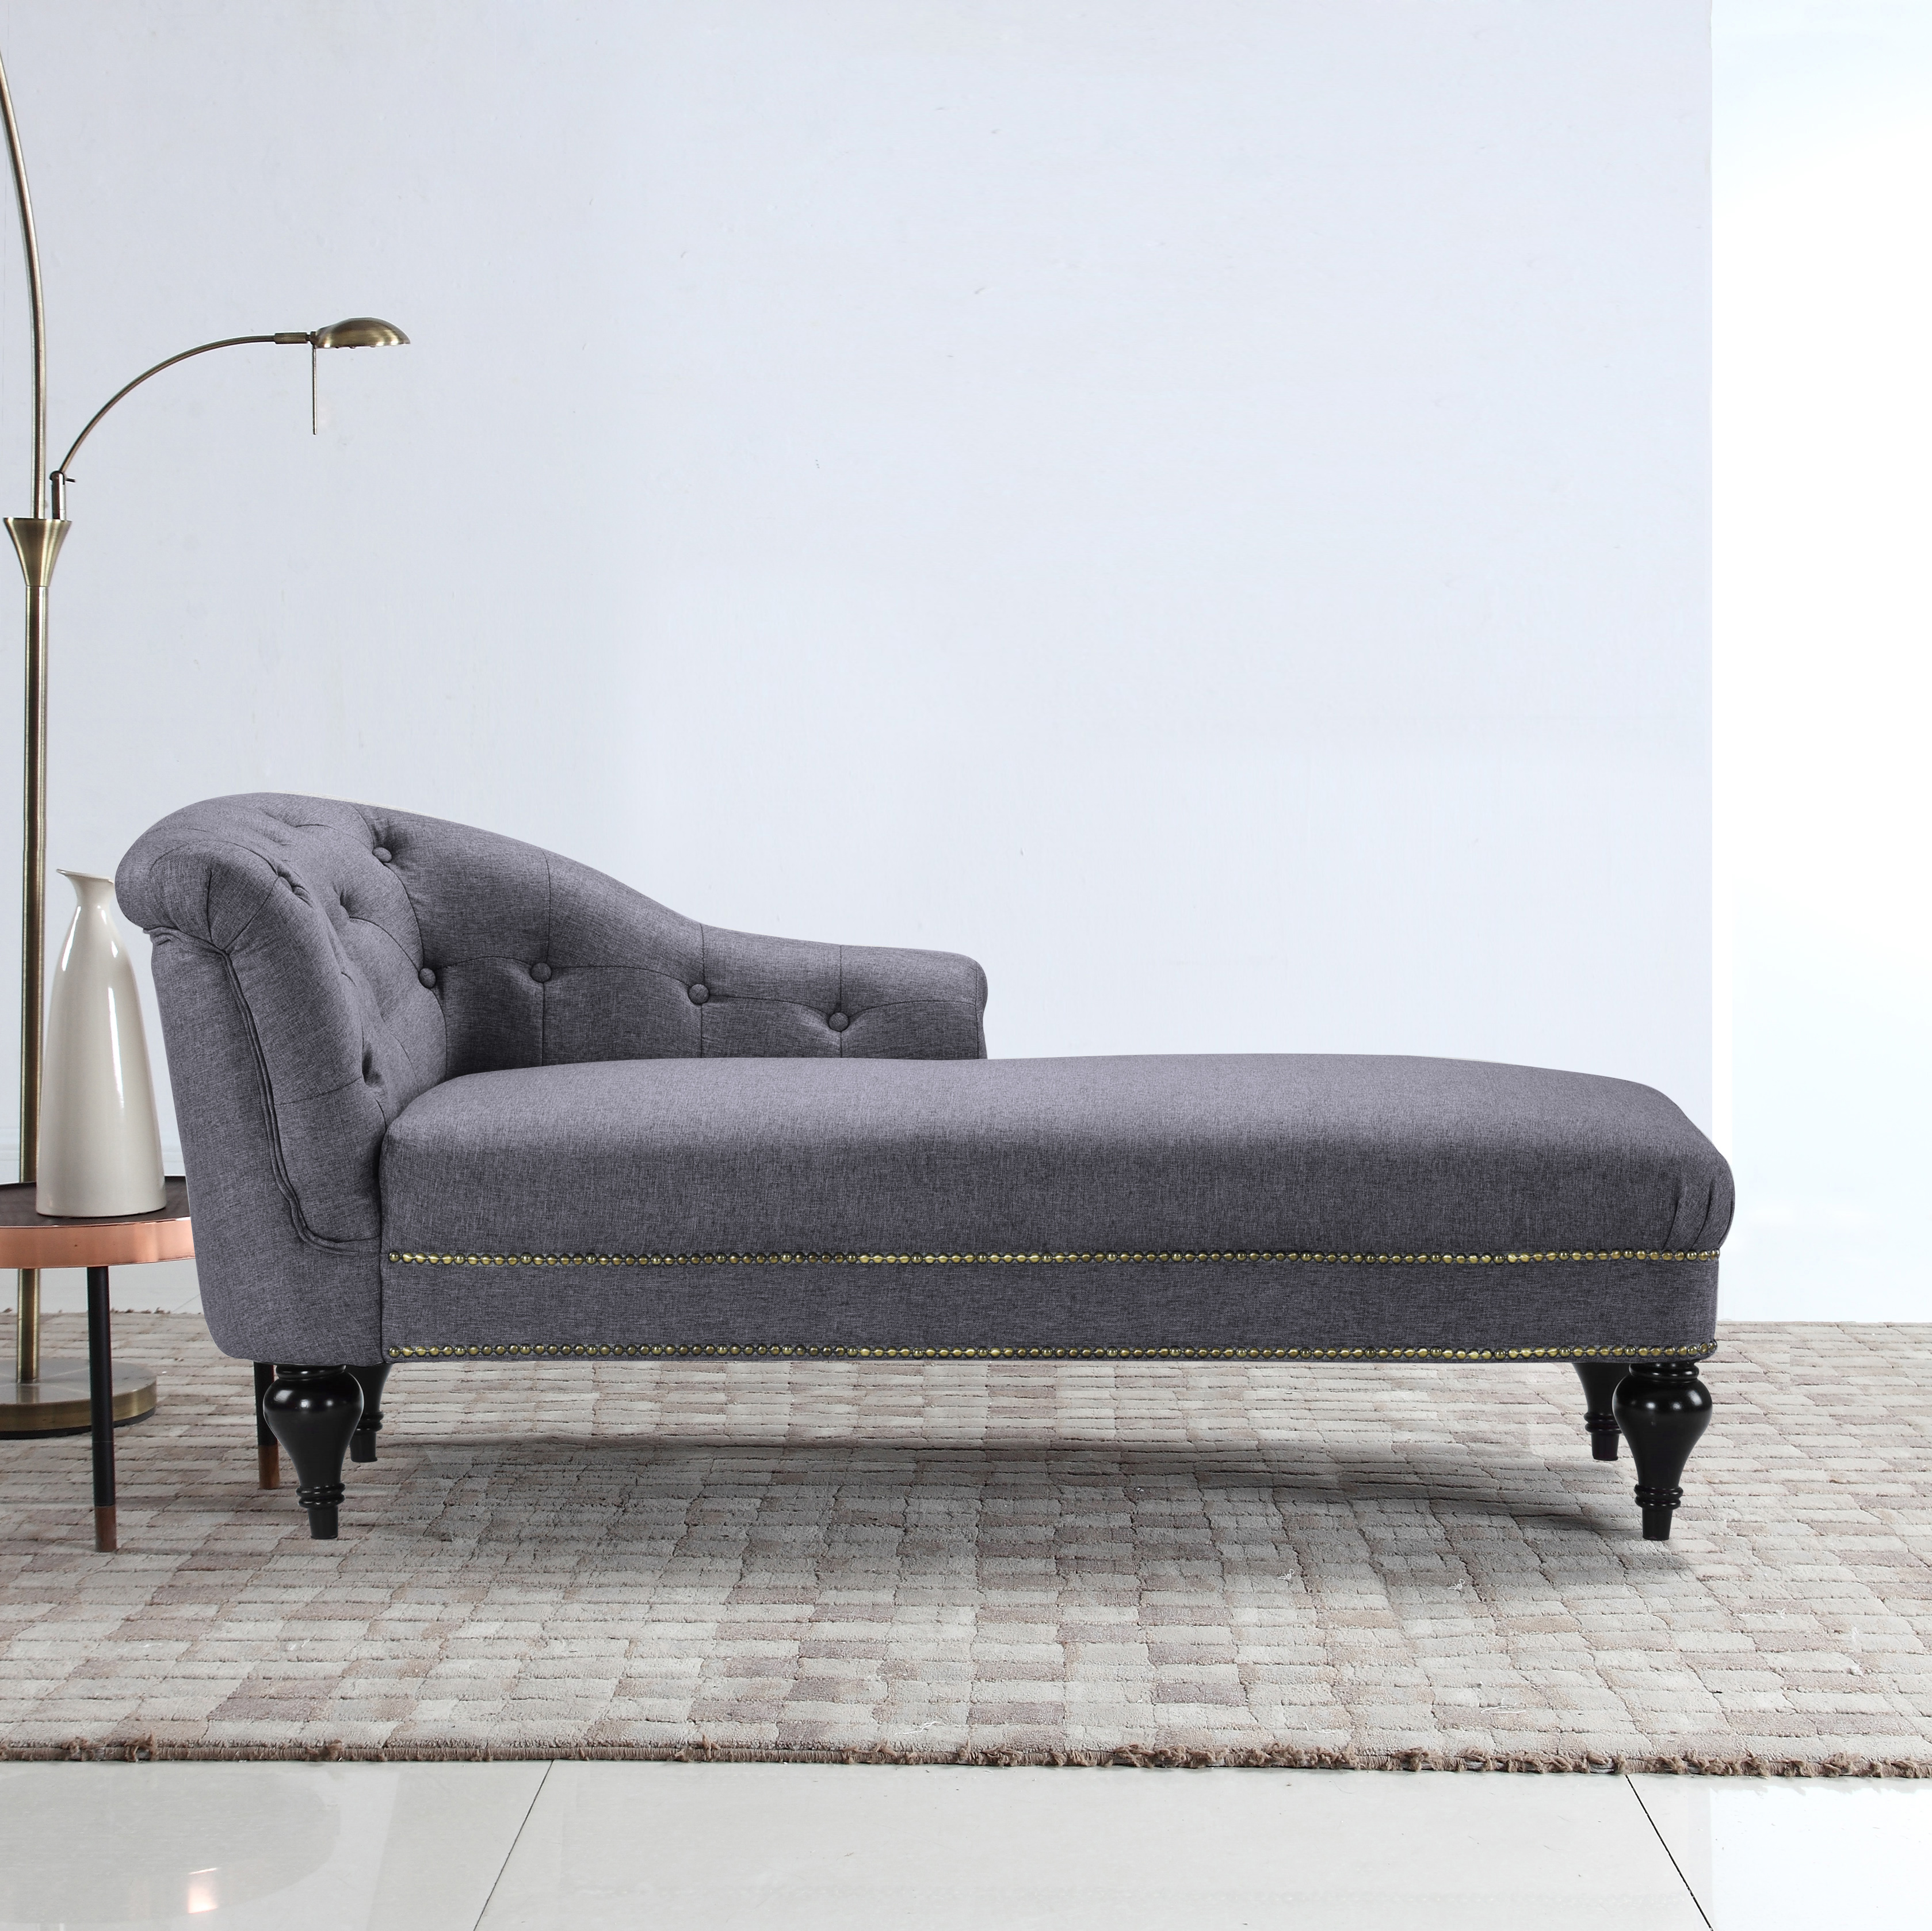 Classic Tufted Button Linen Fabric Living Room Chaise Lounge with Nailhead Trim, Light Grey